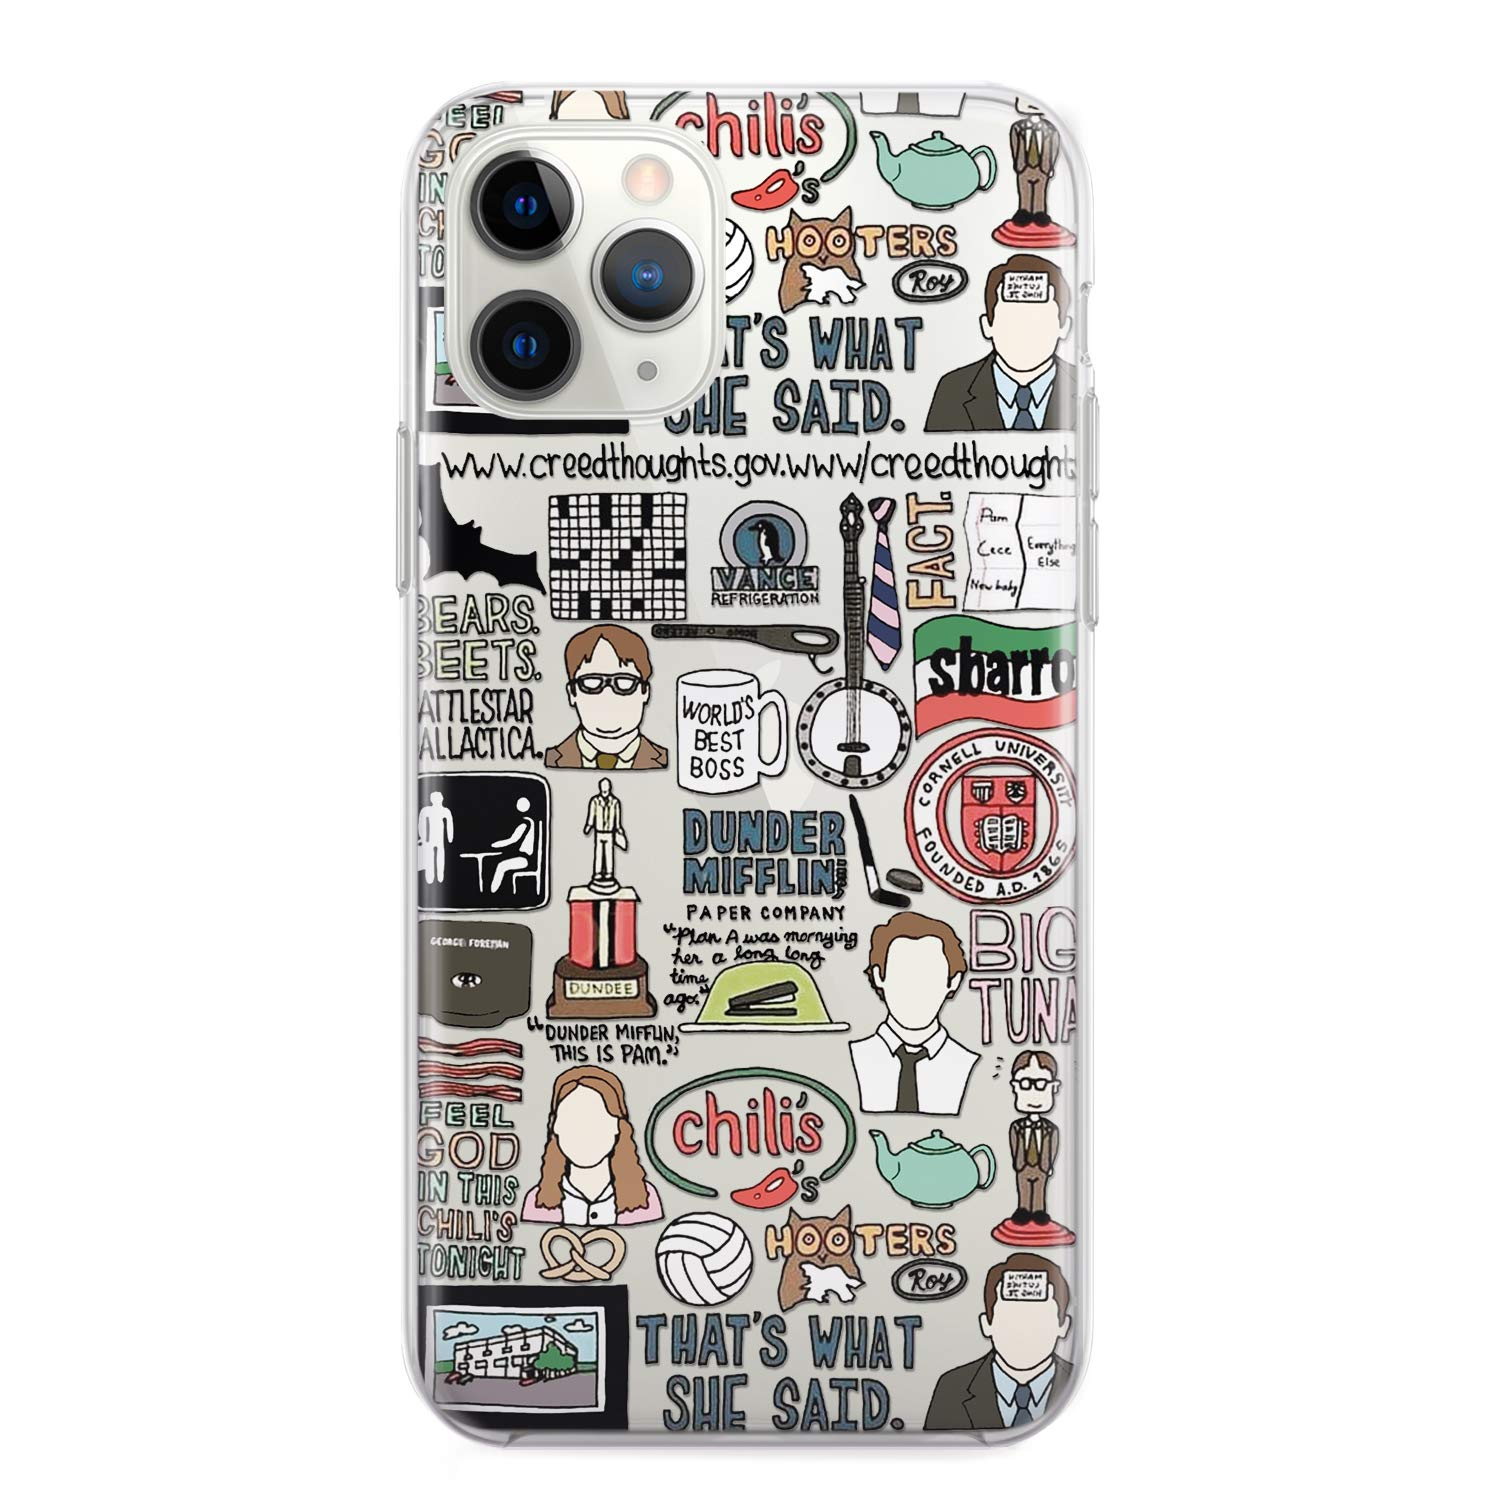 Dunder Mifflin Coffee Mug The Office Max Max 49% OFF 55% OFF Phone M Case Schrute Dwight